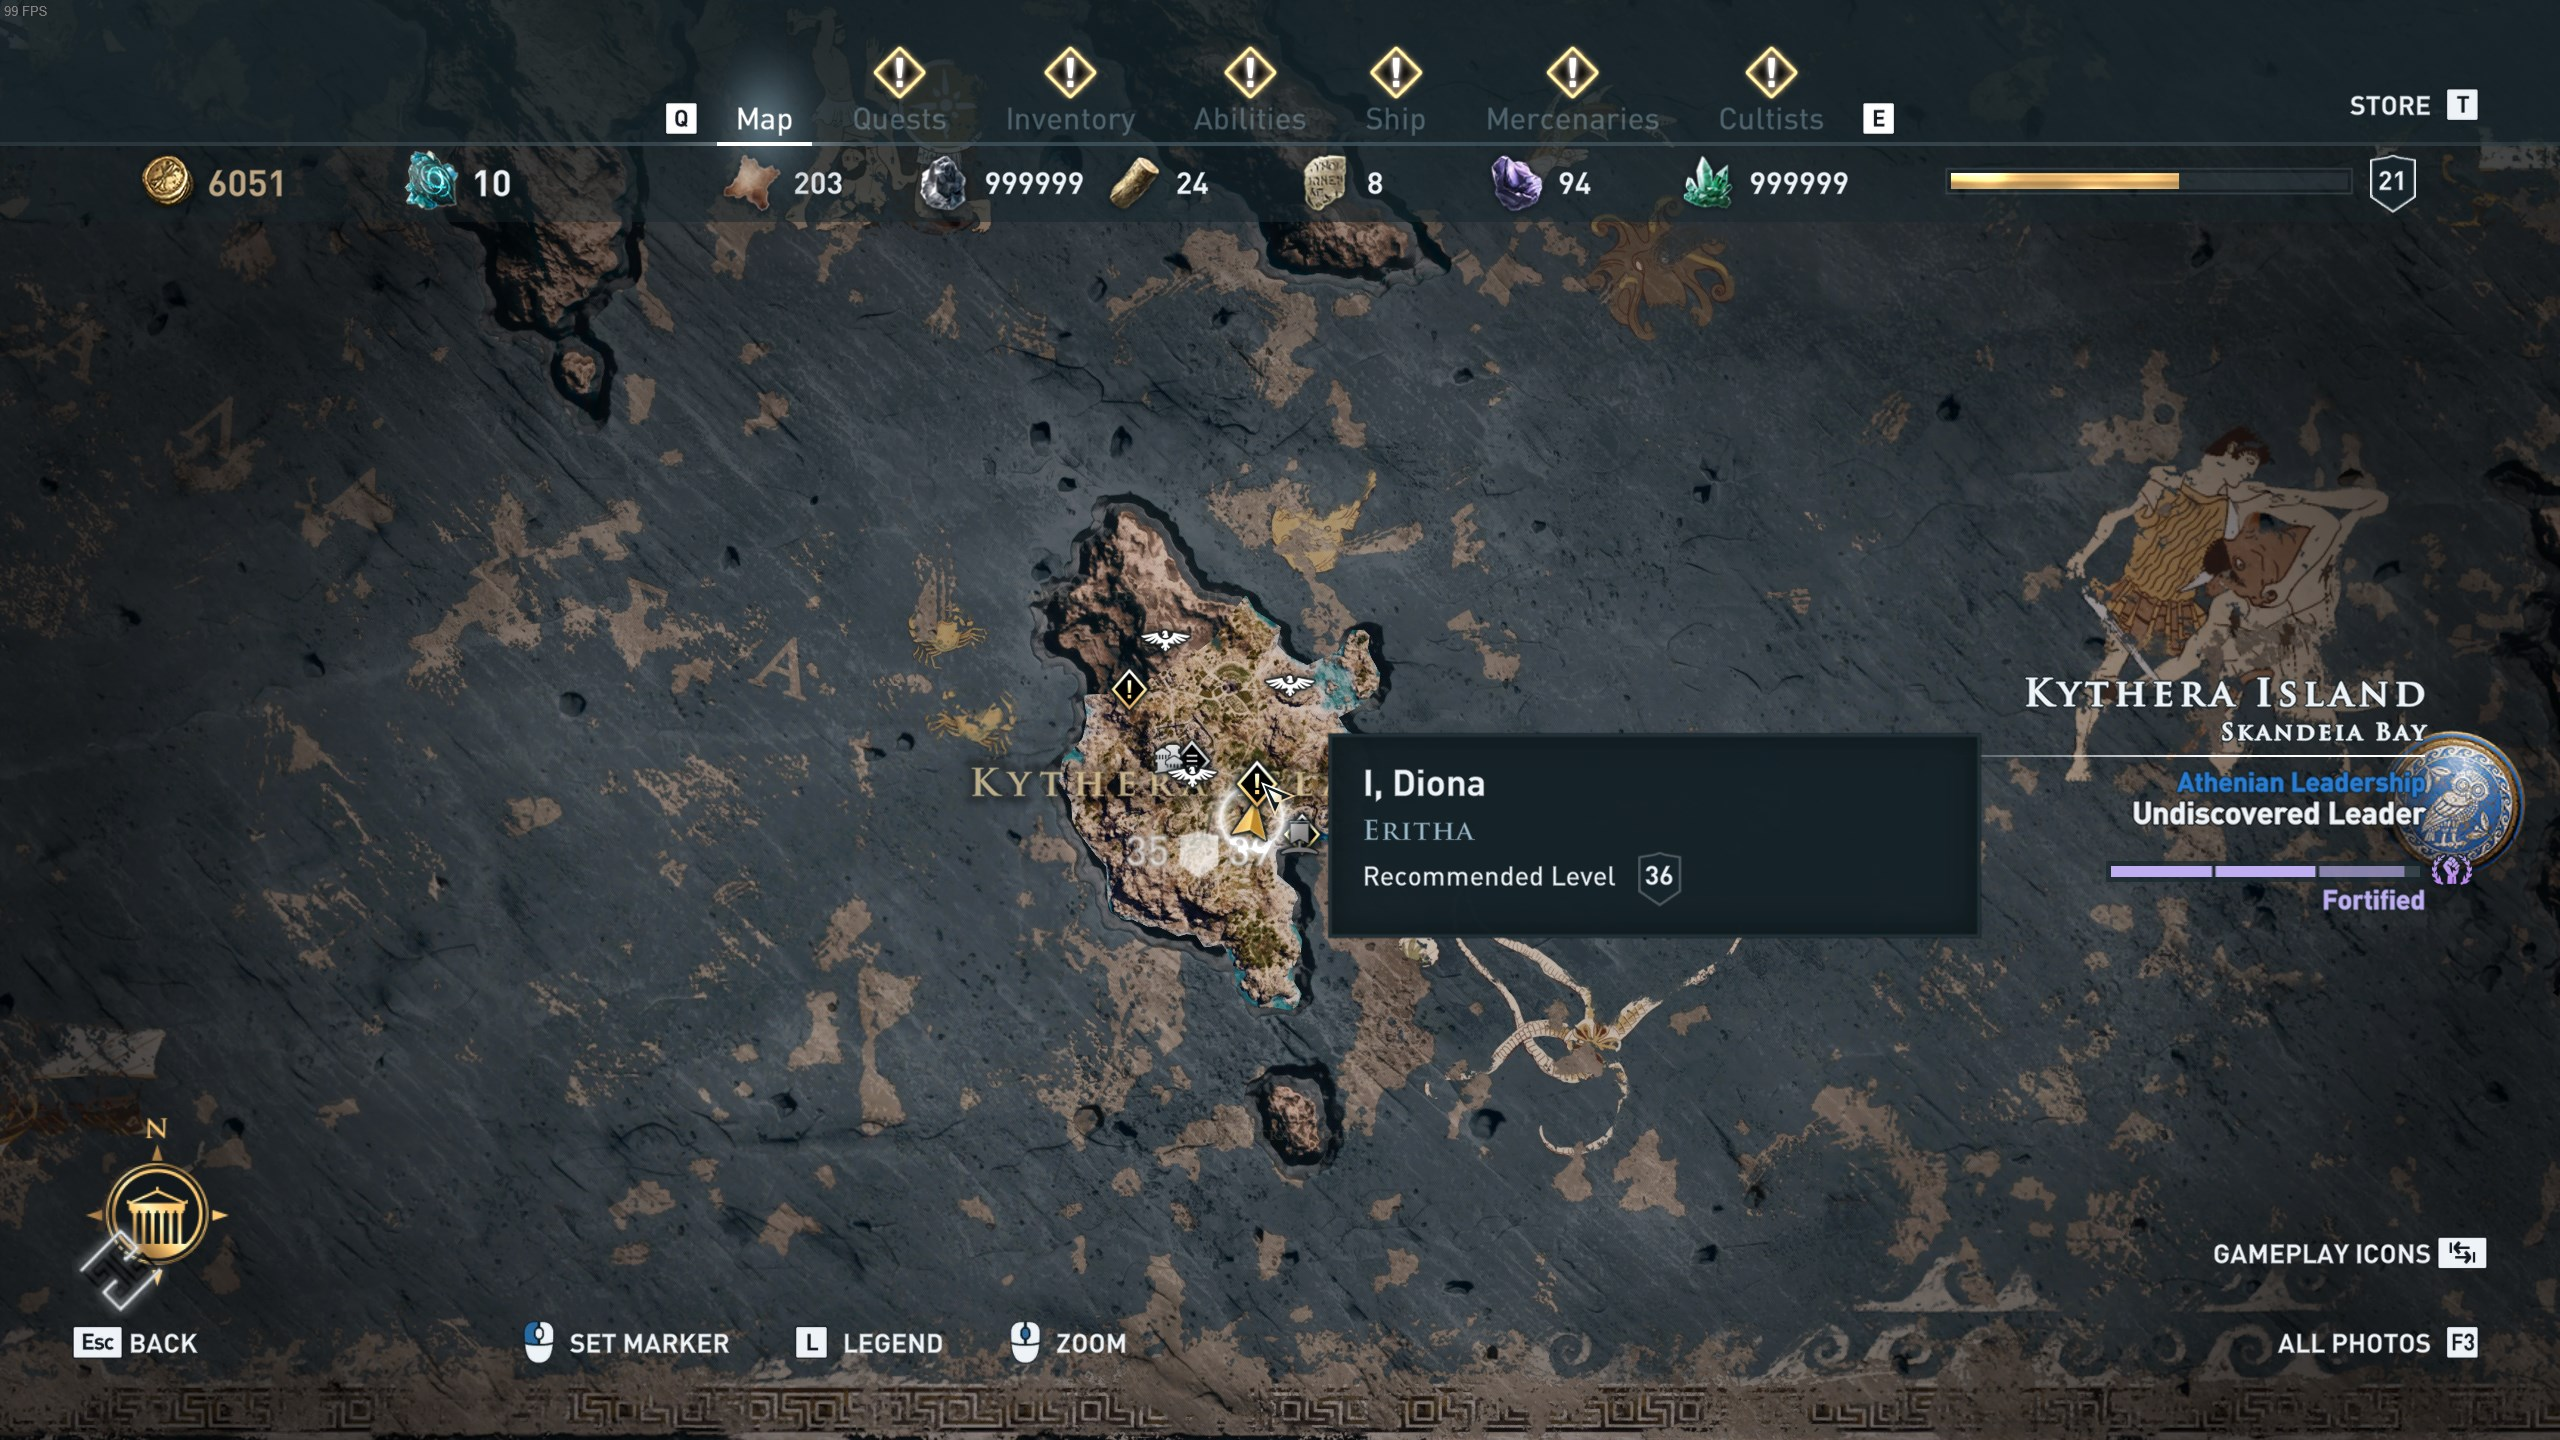 Assassin's Creed Odyssey - Diona location